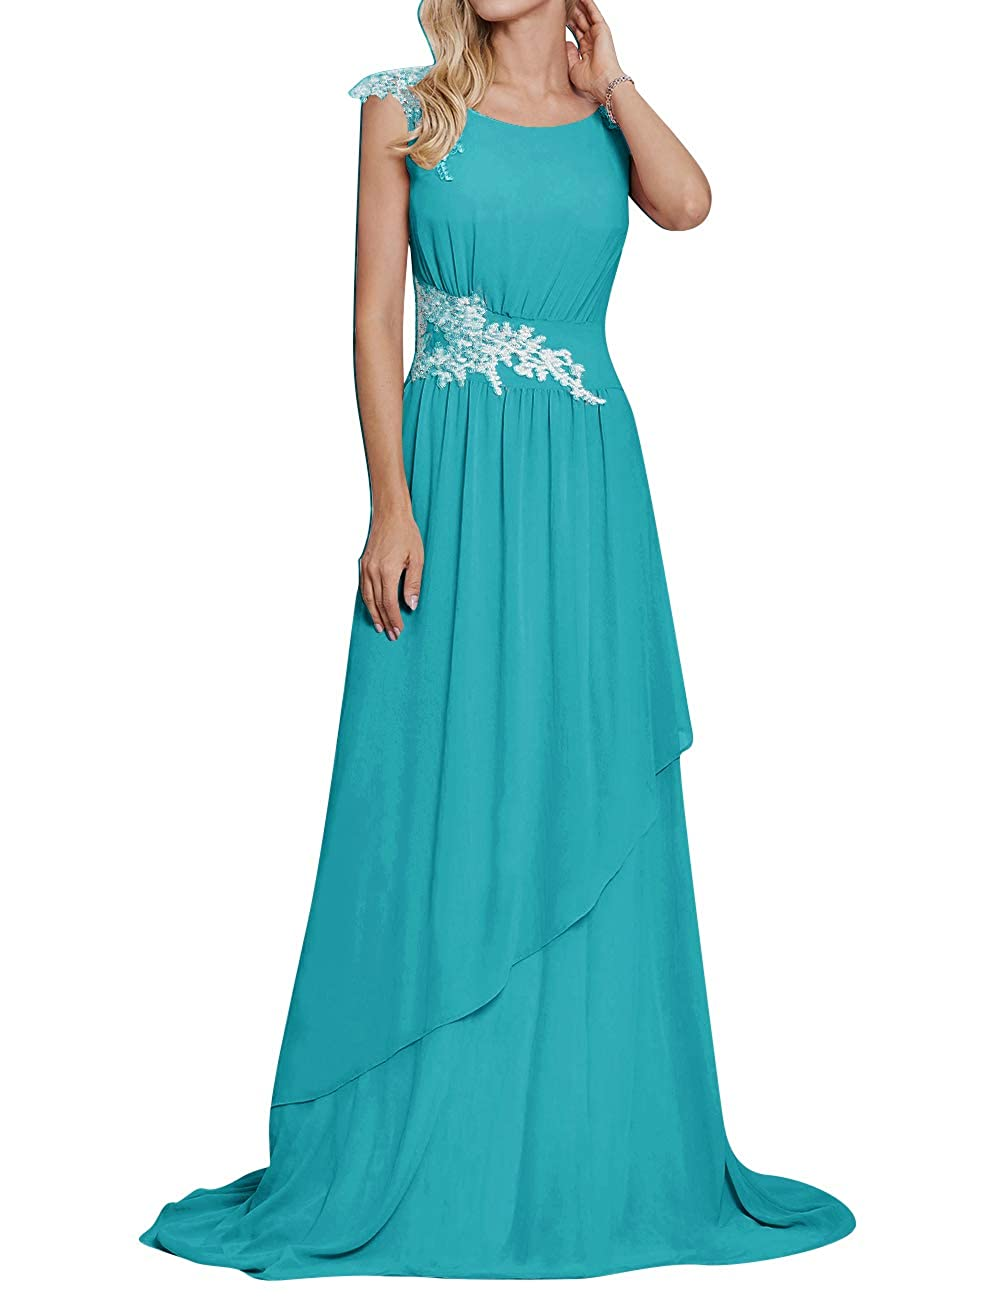 Turquoise Long Evening Party Dress Scoop Mother of The Bride Dresses Lace Appliques